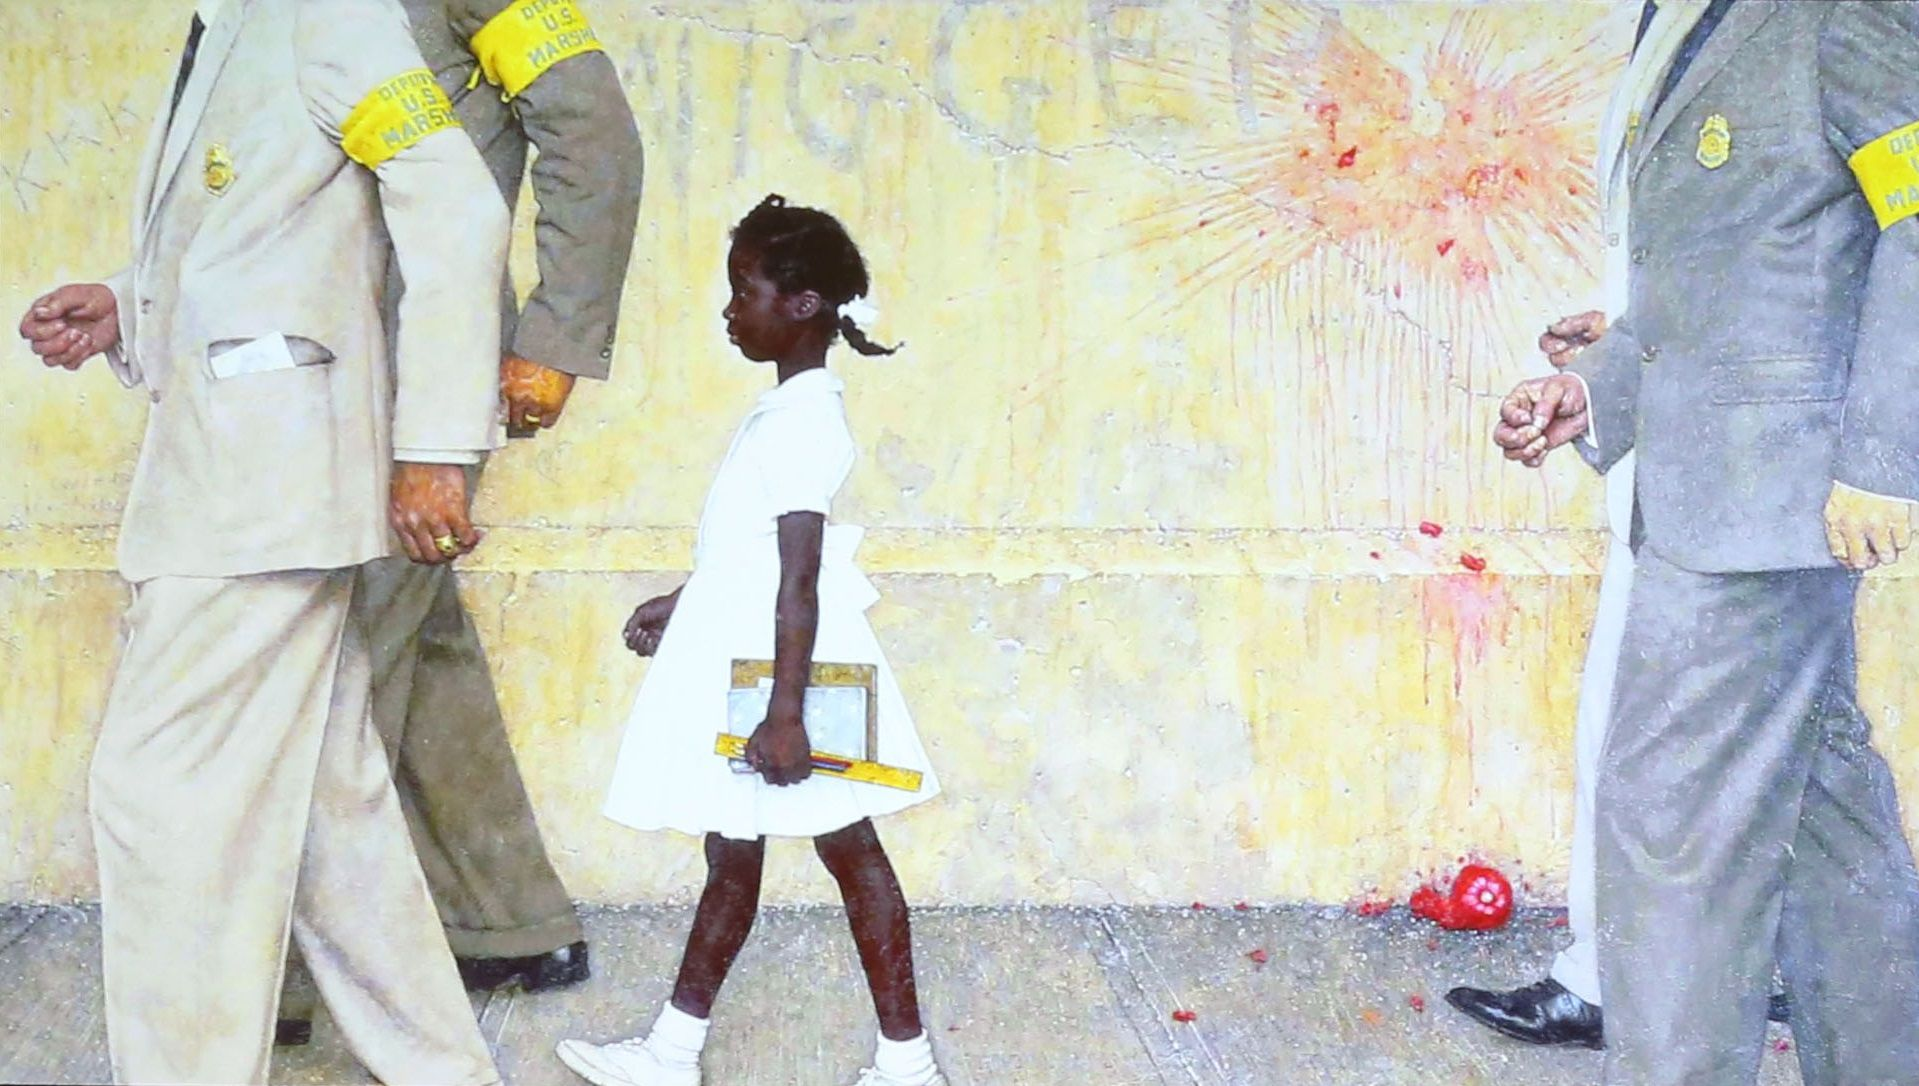 """A Look at Rockwell's """"The Problem We All Live With"""""""